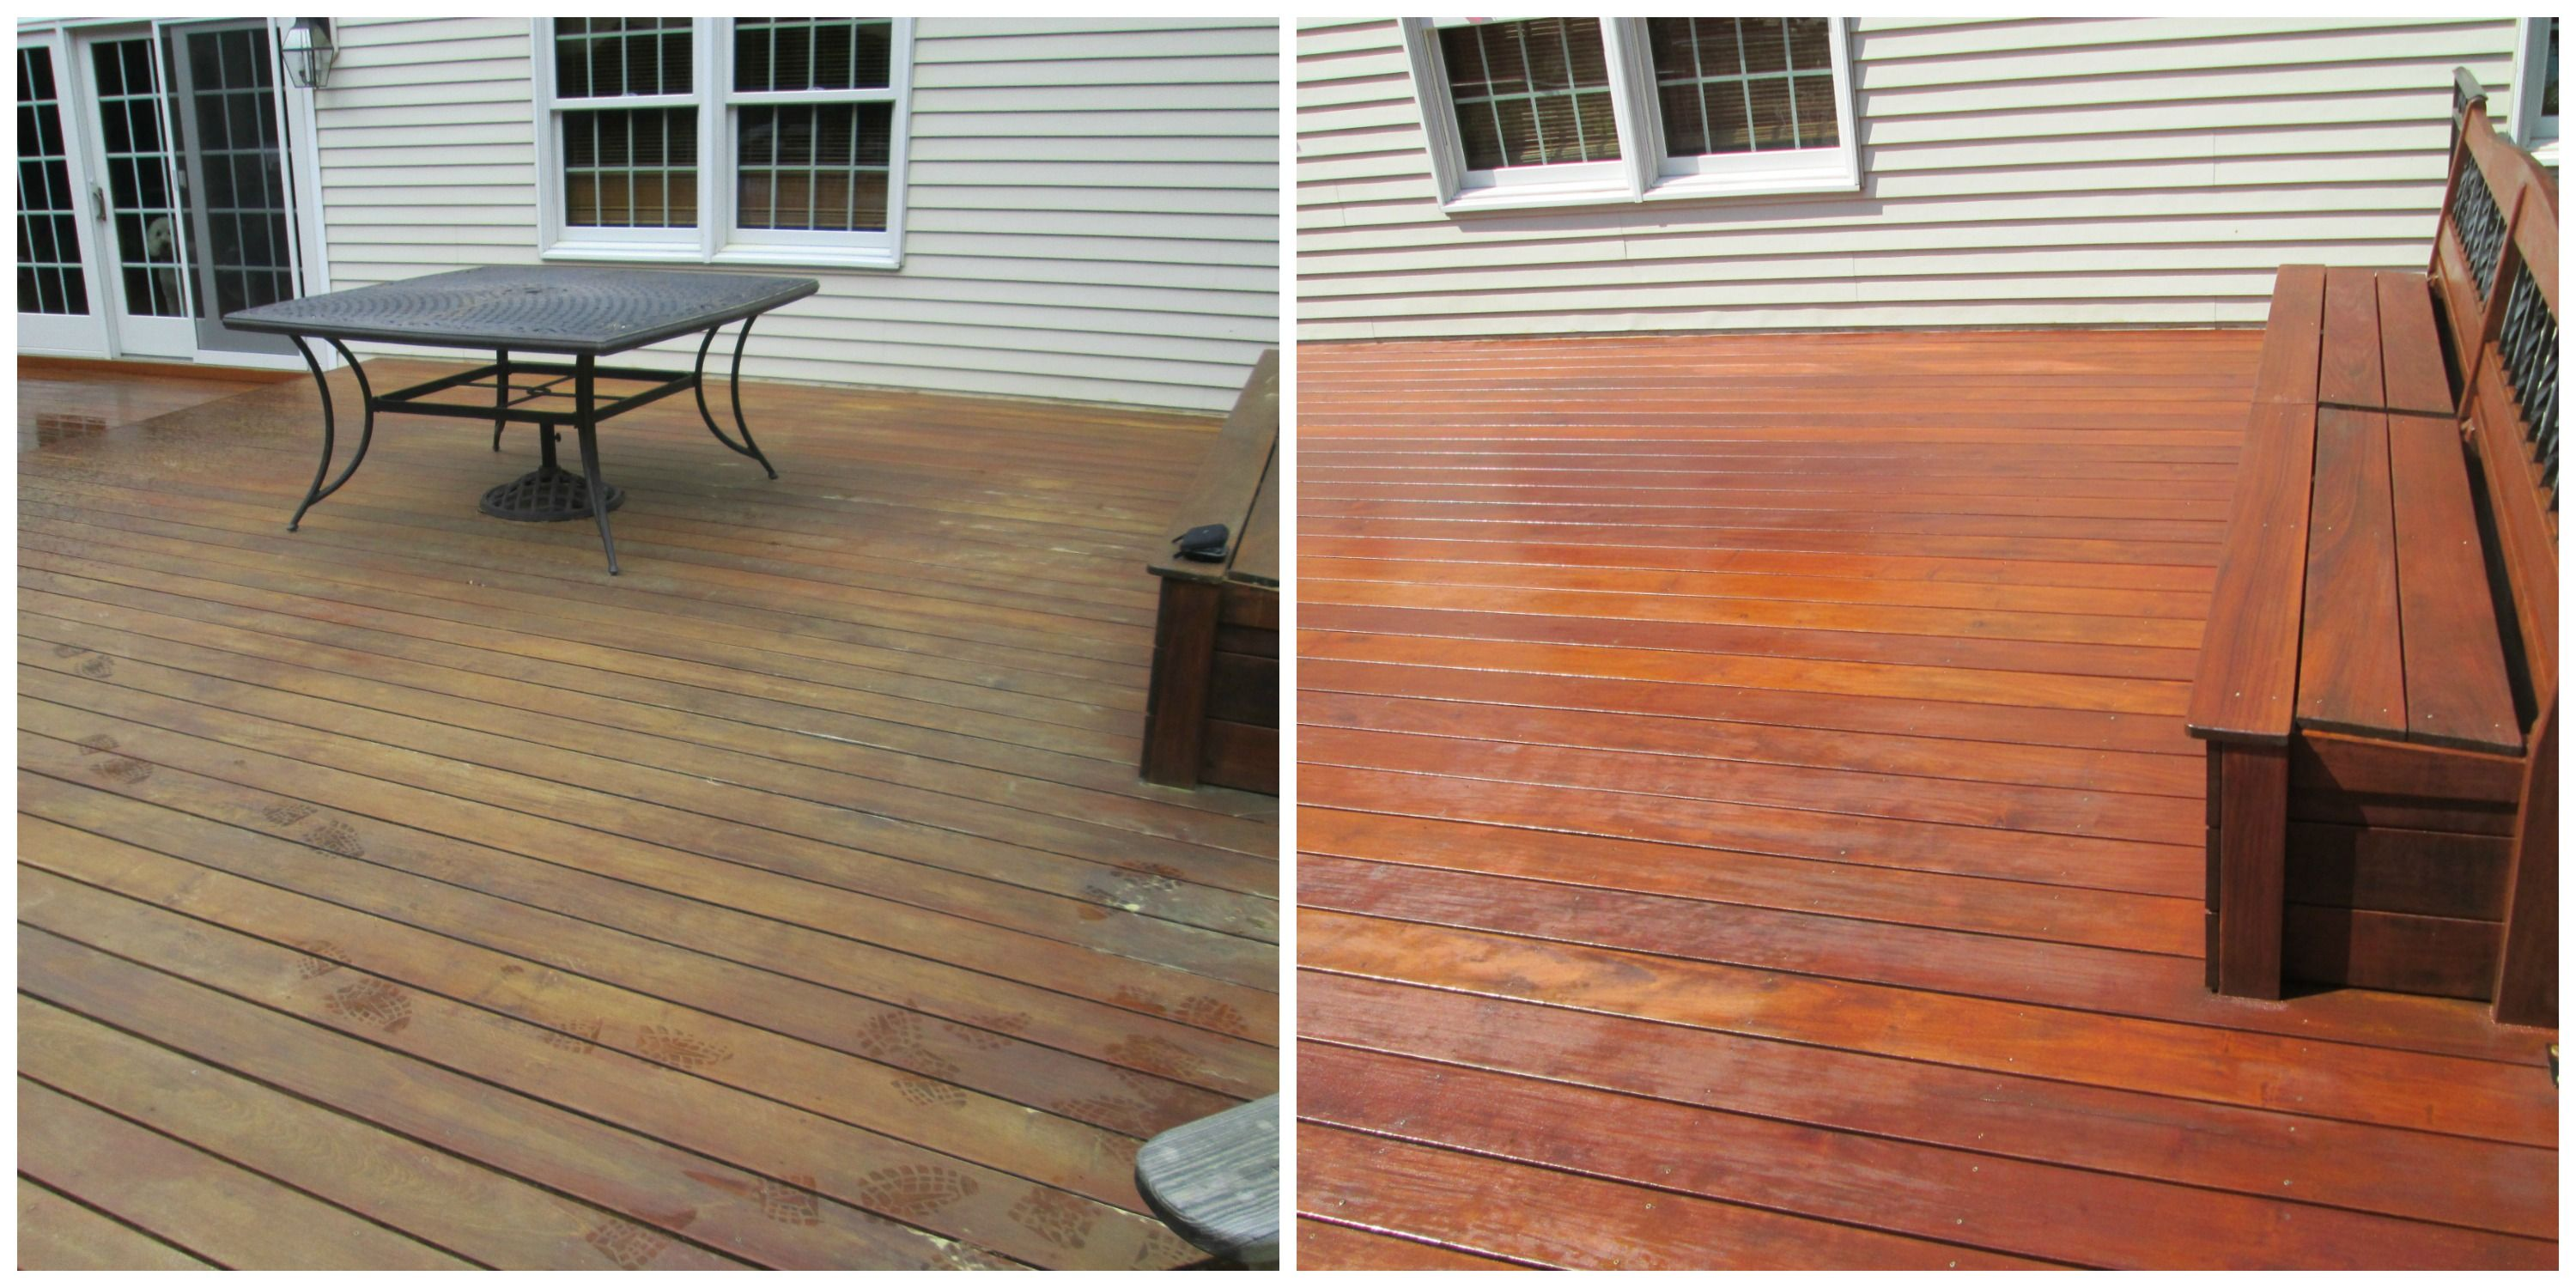 Deck Restoration Plus Specializes In All Things Decks As We Build Rebuild Repair Restore Stain And Provide Disc Building A Deck Deck Deck Building Plans